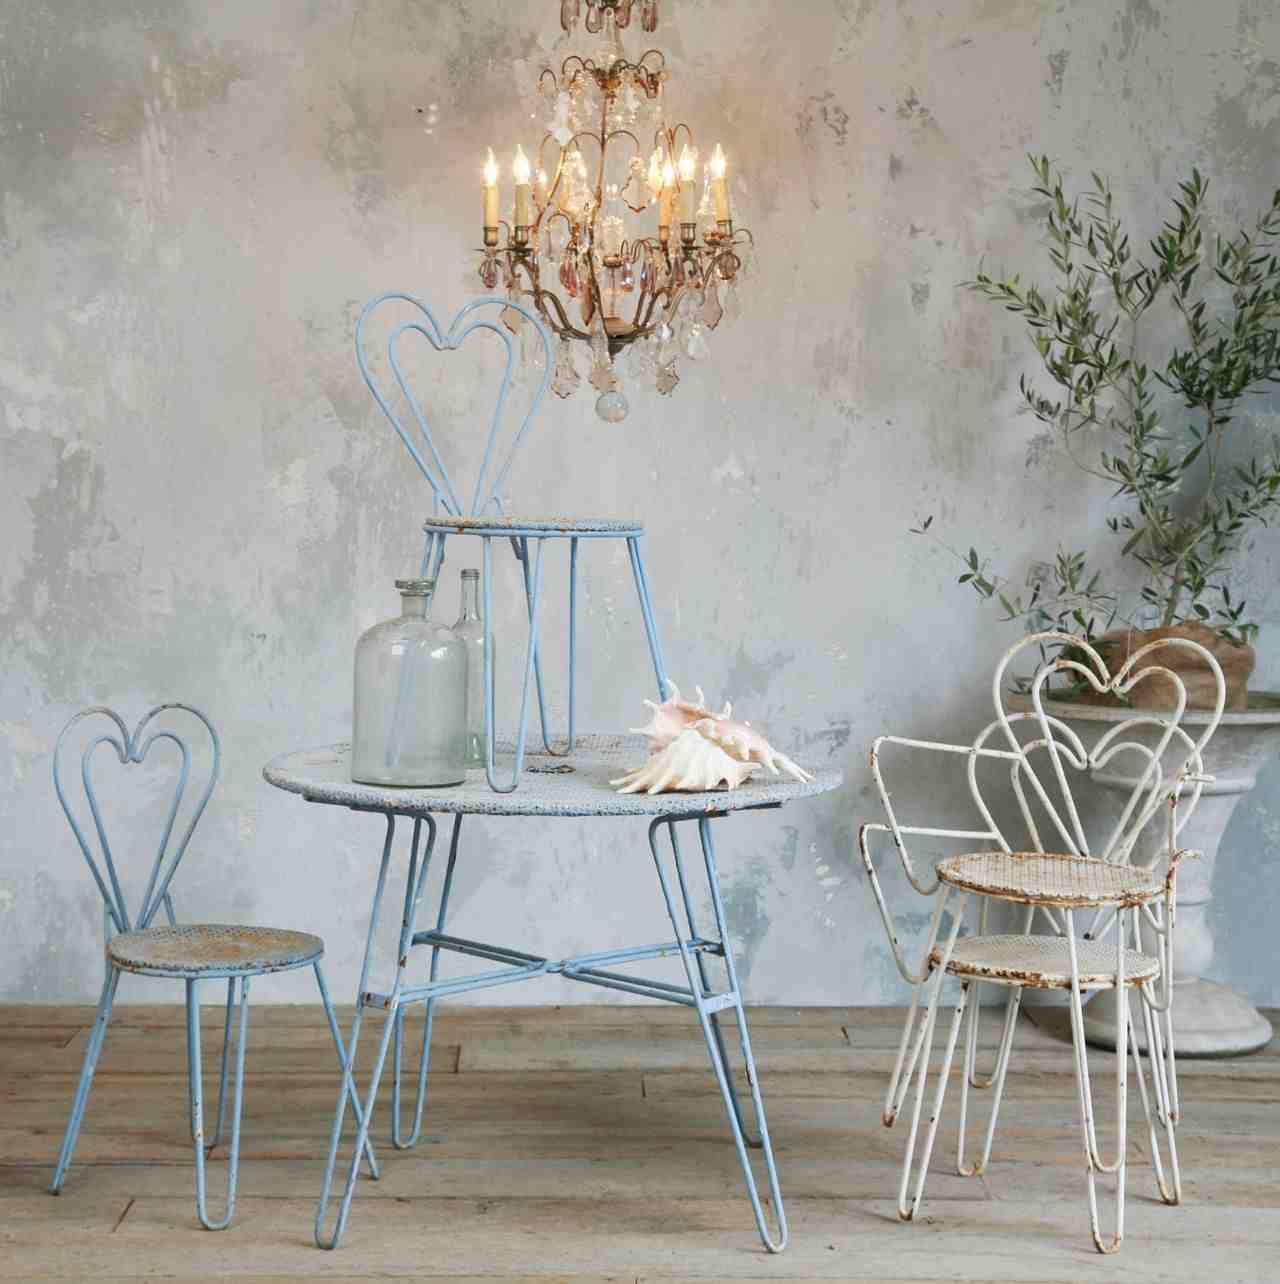 Rustic shabby chic home decor decor ideasdecor ideas Home design ideas shabby chic